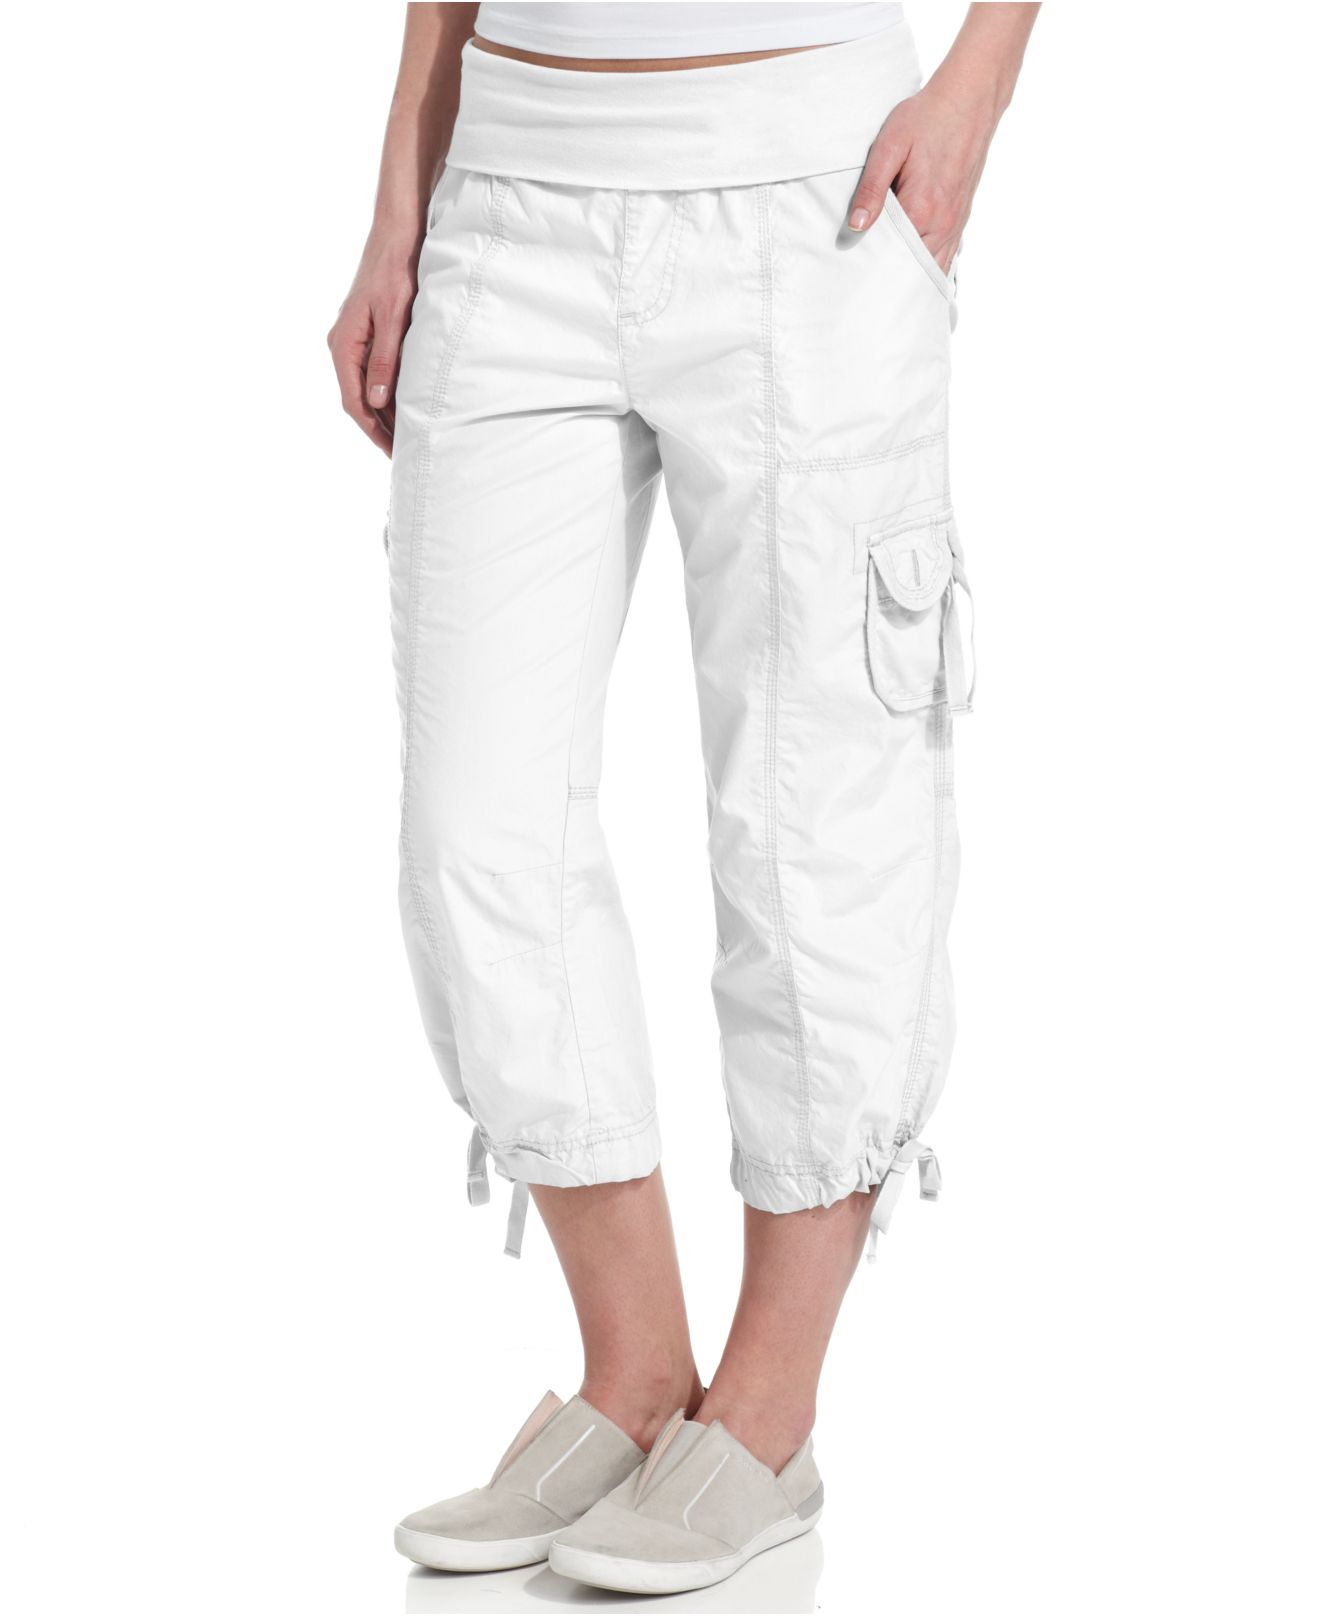 Calvin klein Performance Cropped Capri Pants in White | Lyst